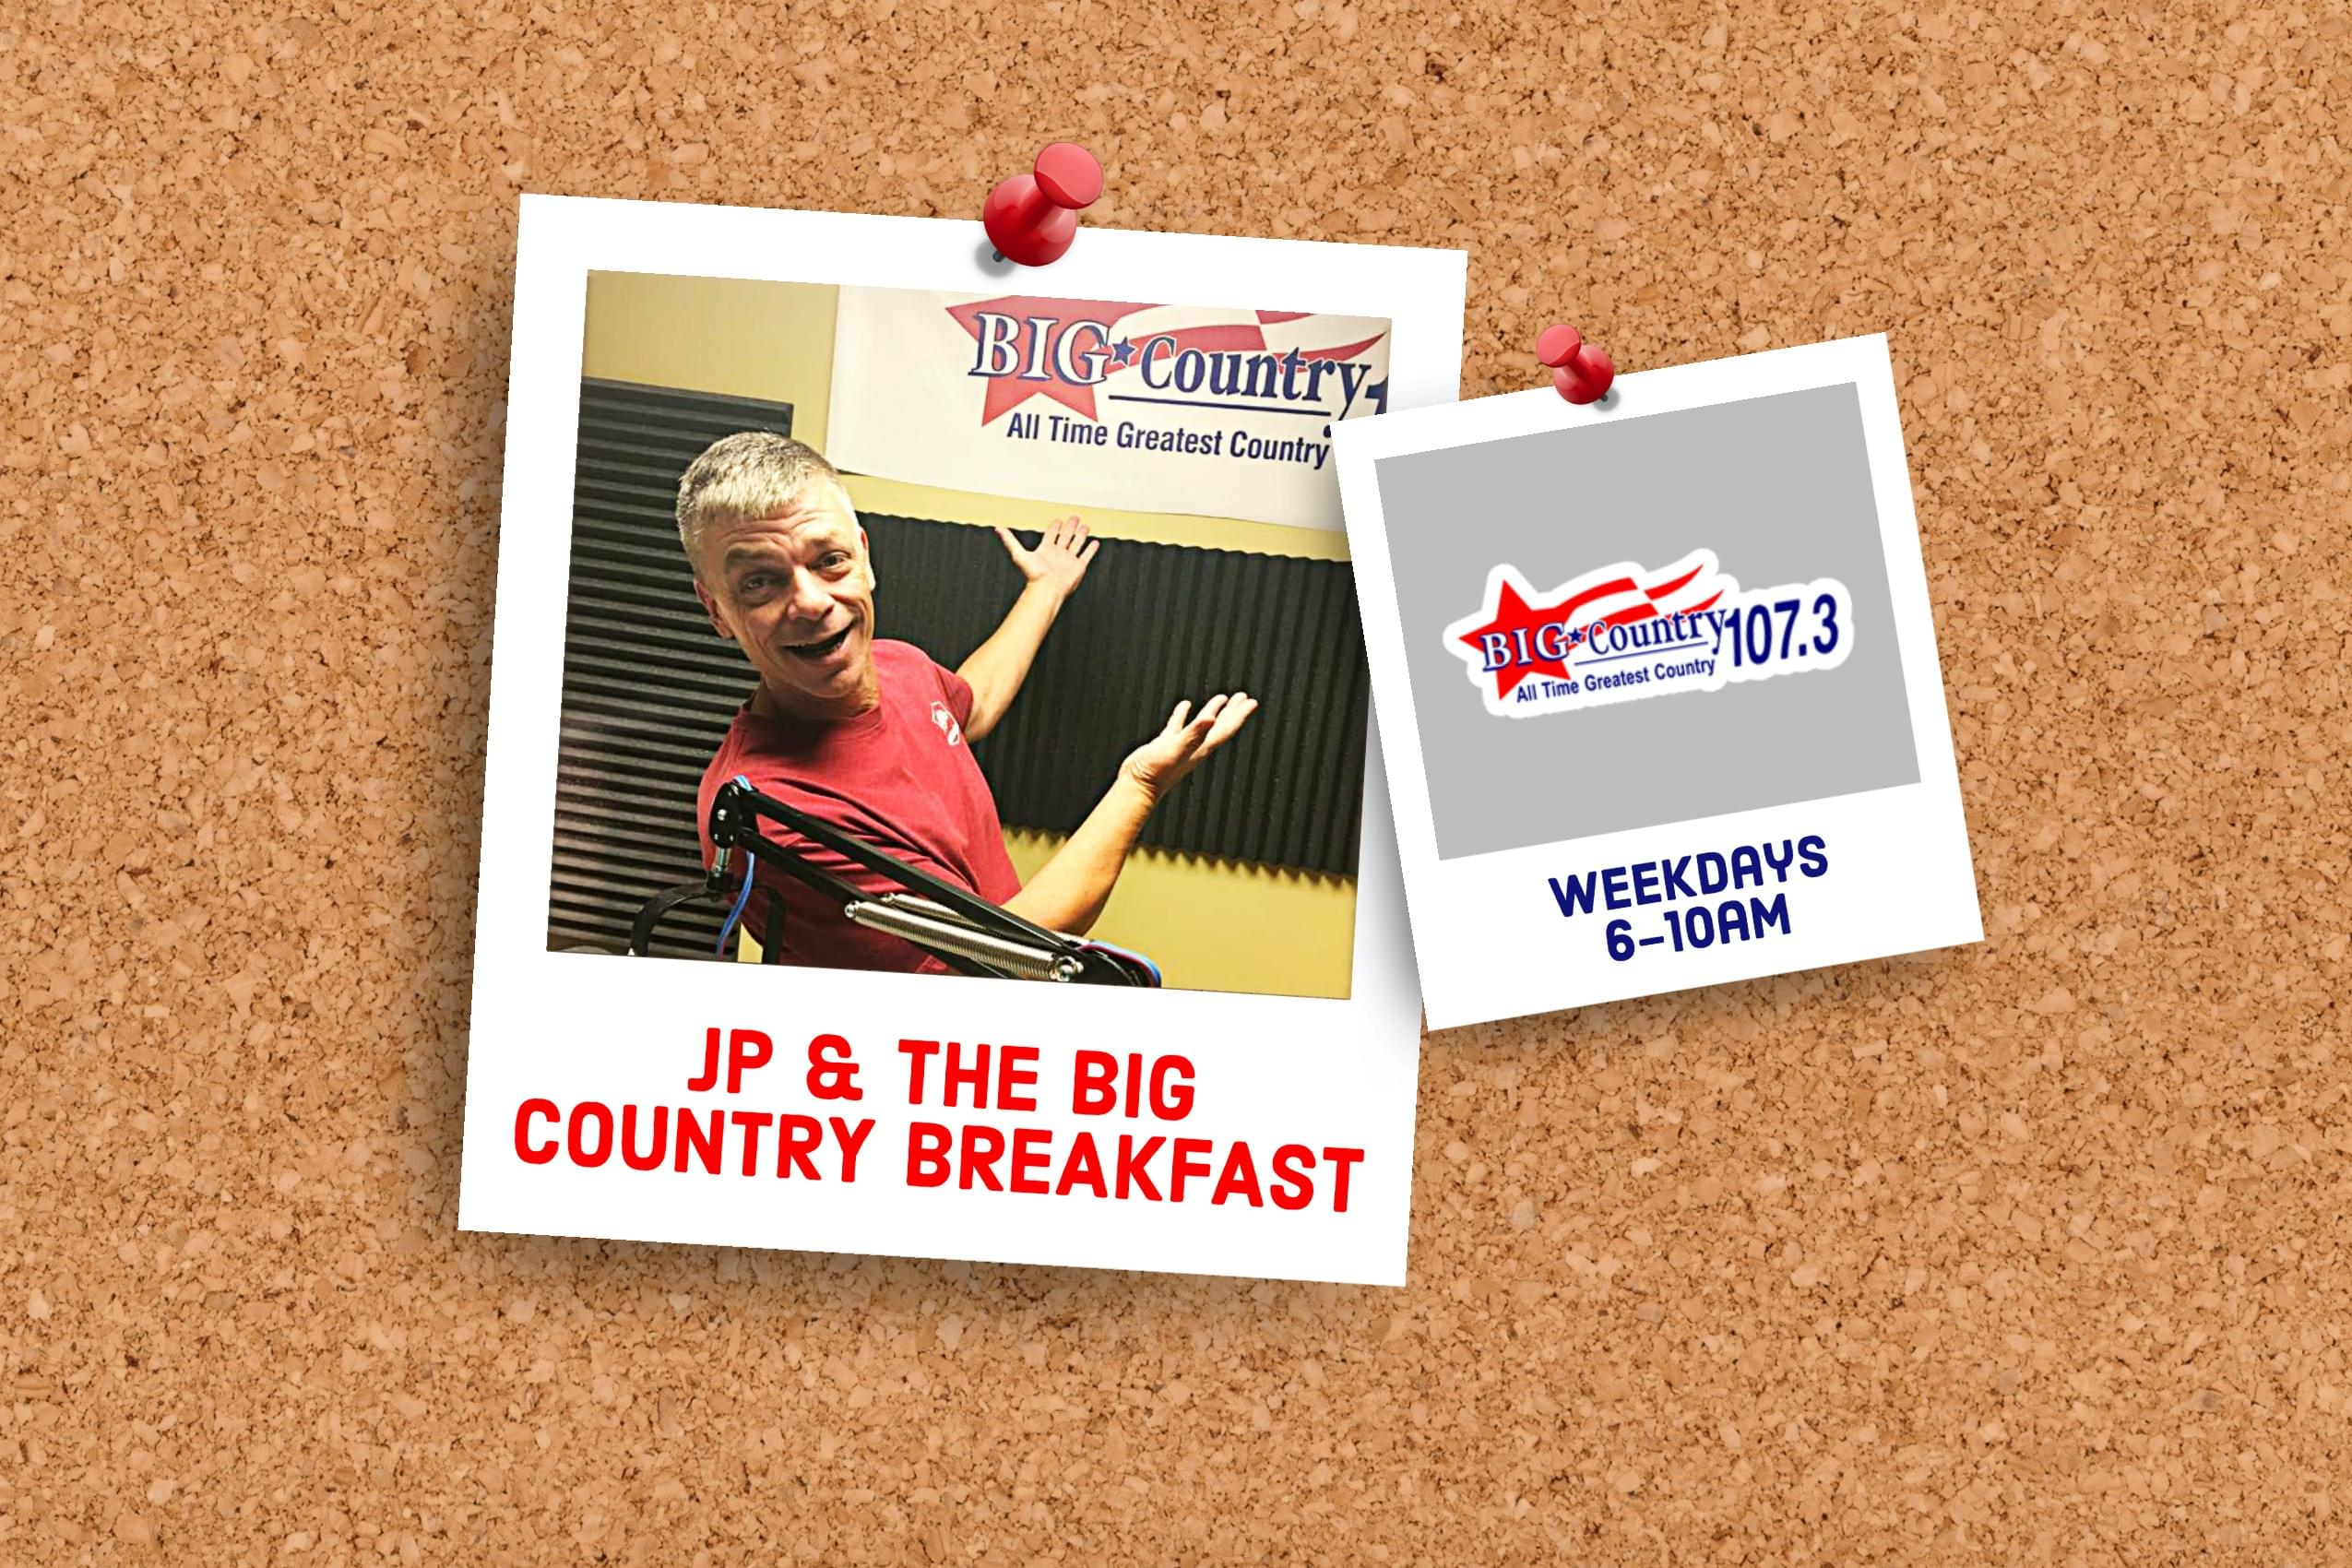 J.P. & The Big Country Breakfast